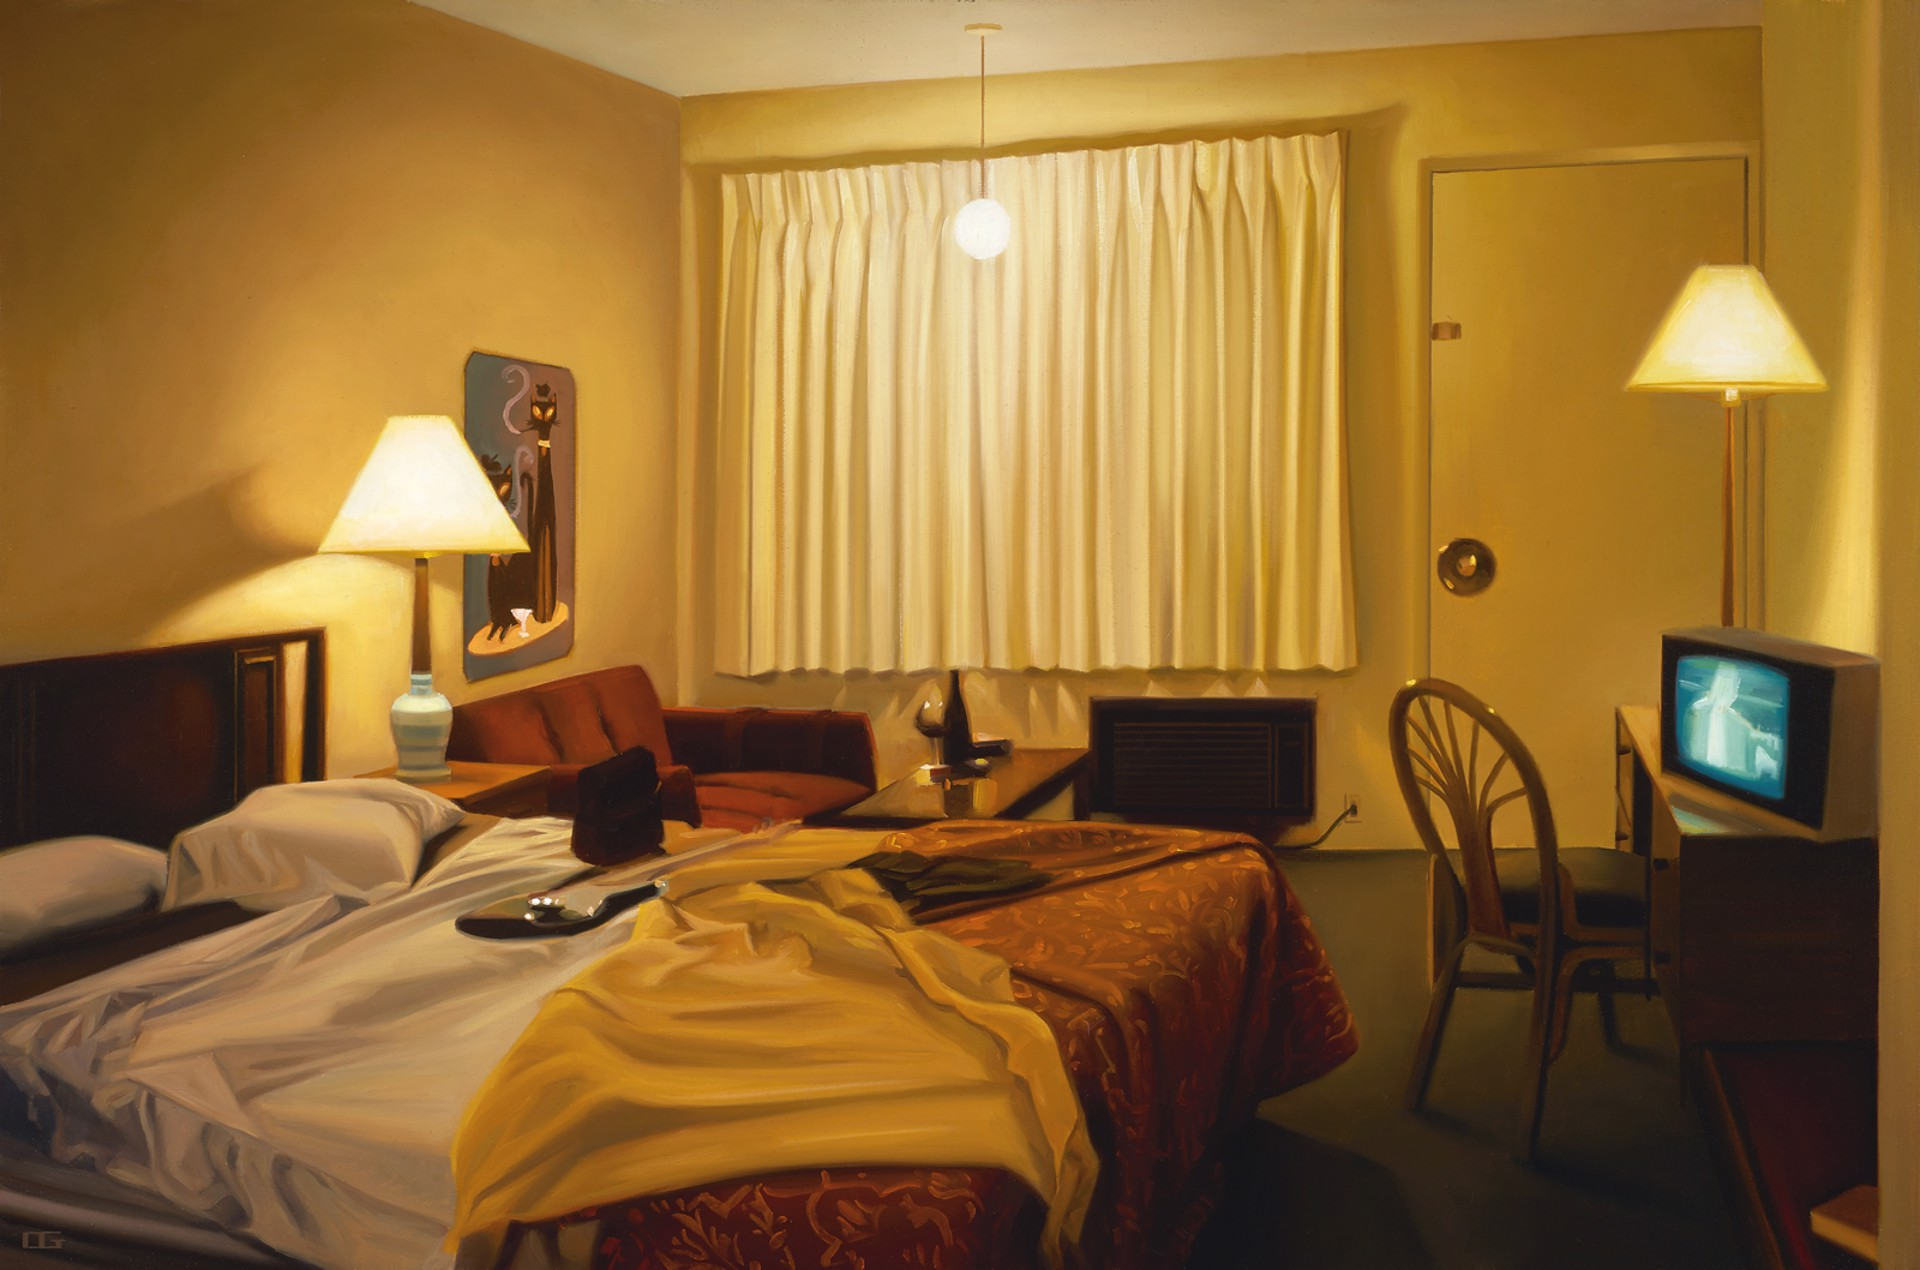 The Astro Motel (S/N) by Carrie Graber